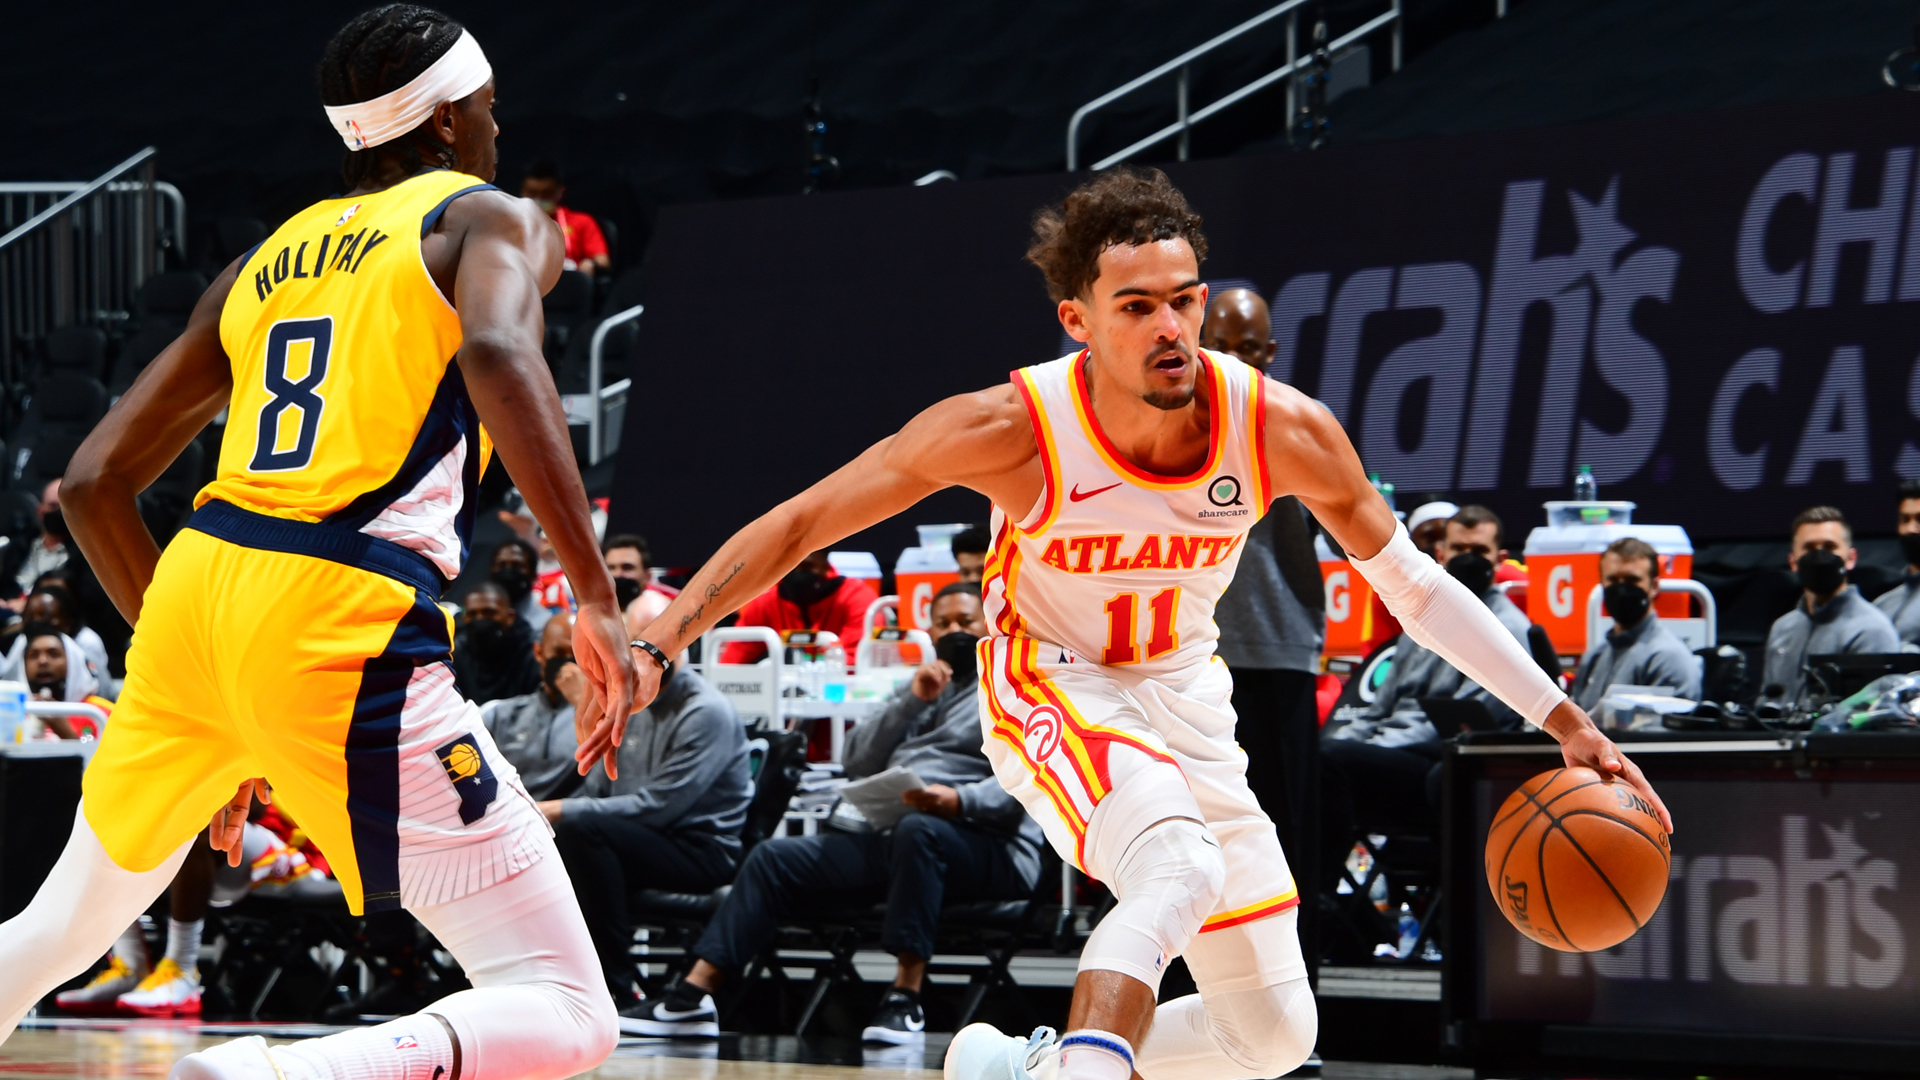 Game Recap: Hawks 129, Pacers 117